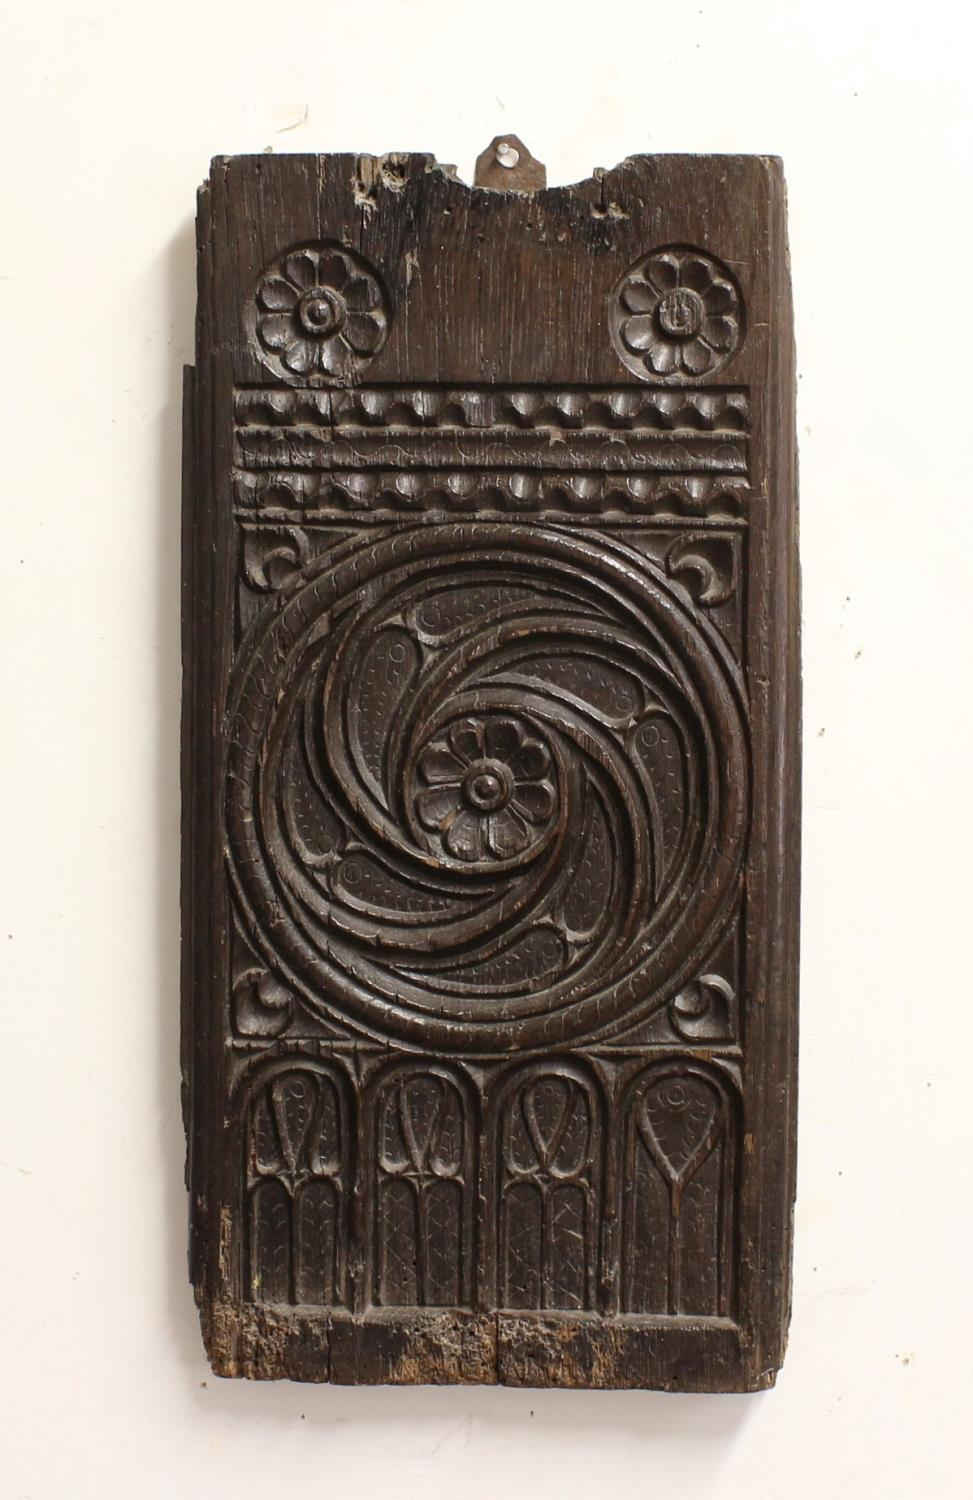 A 16TH CENTURY PEW END SECTION. A rectangular section from a 16th century or earlier pew end, carved